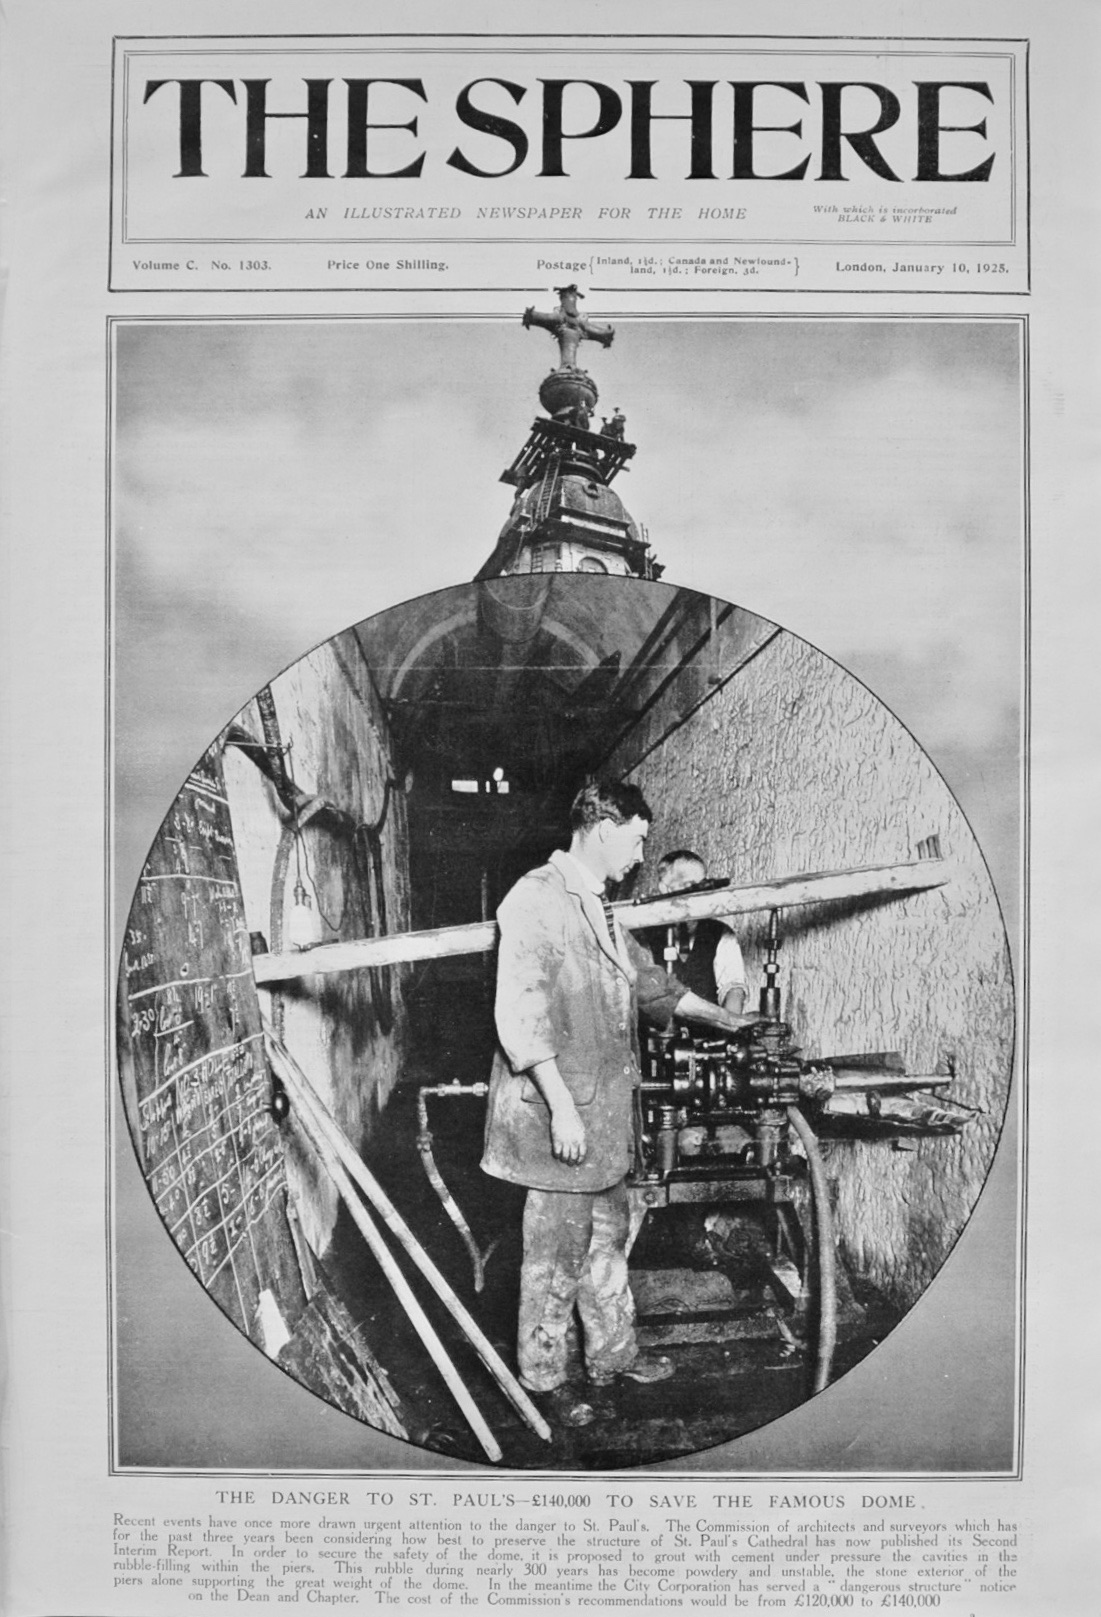 The Sphere - January 10, 1925